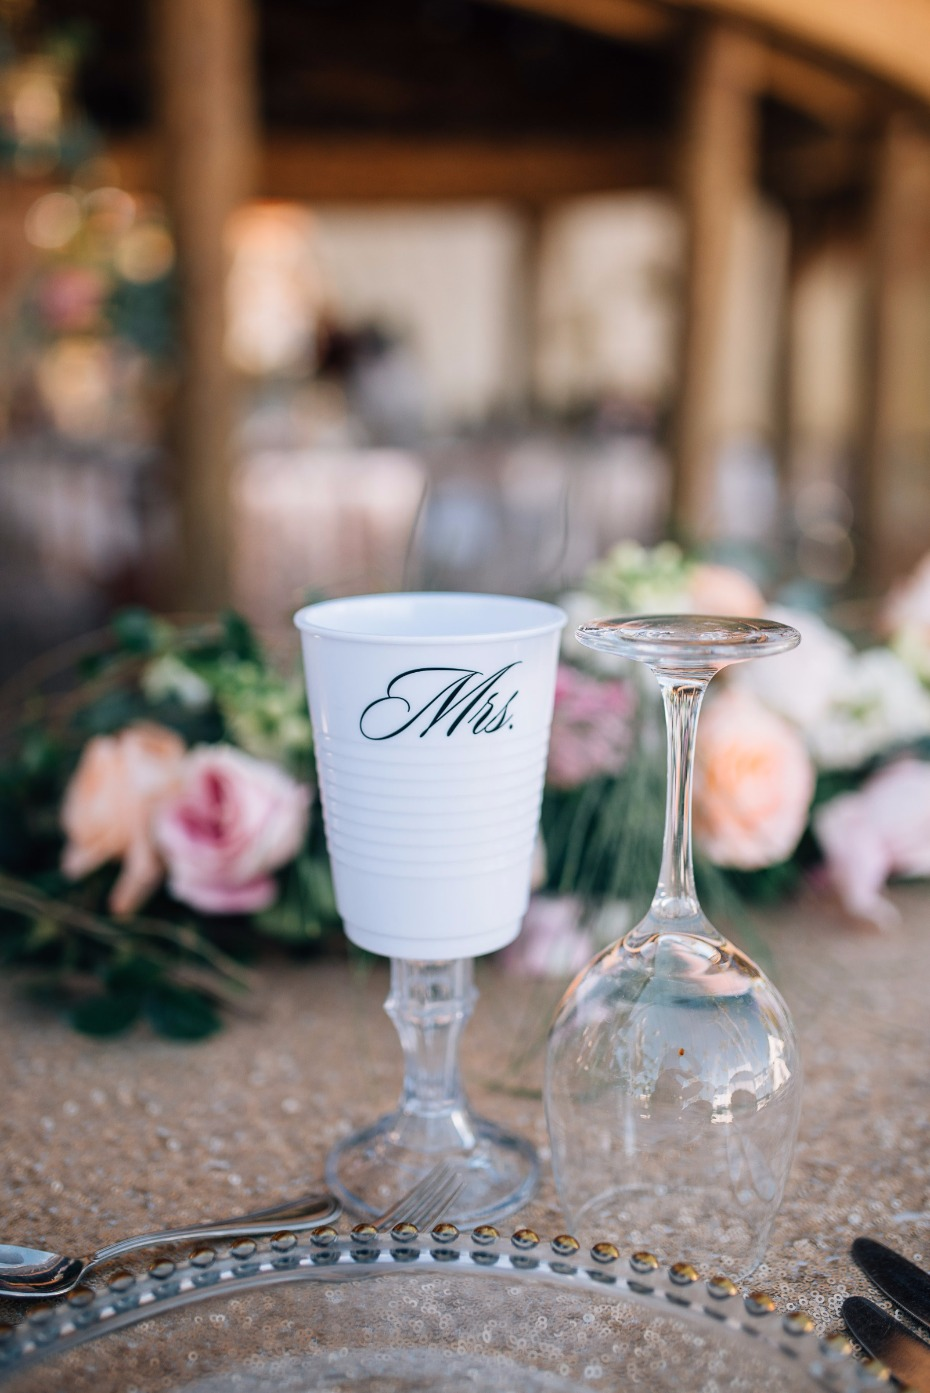 mrs white solo cup goblet for the bride